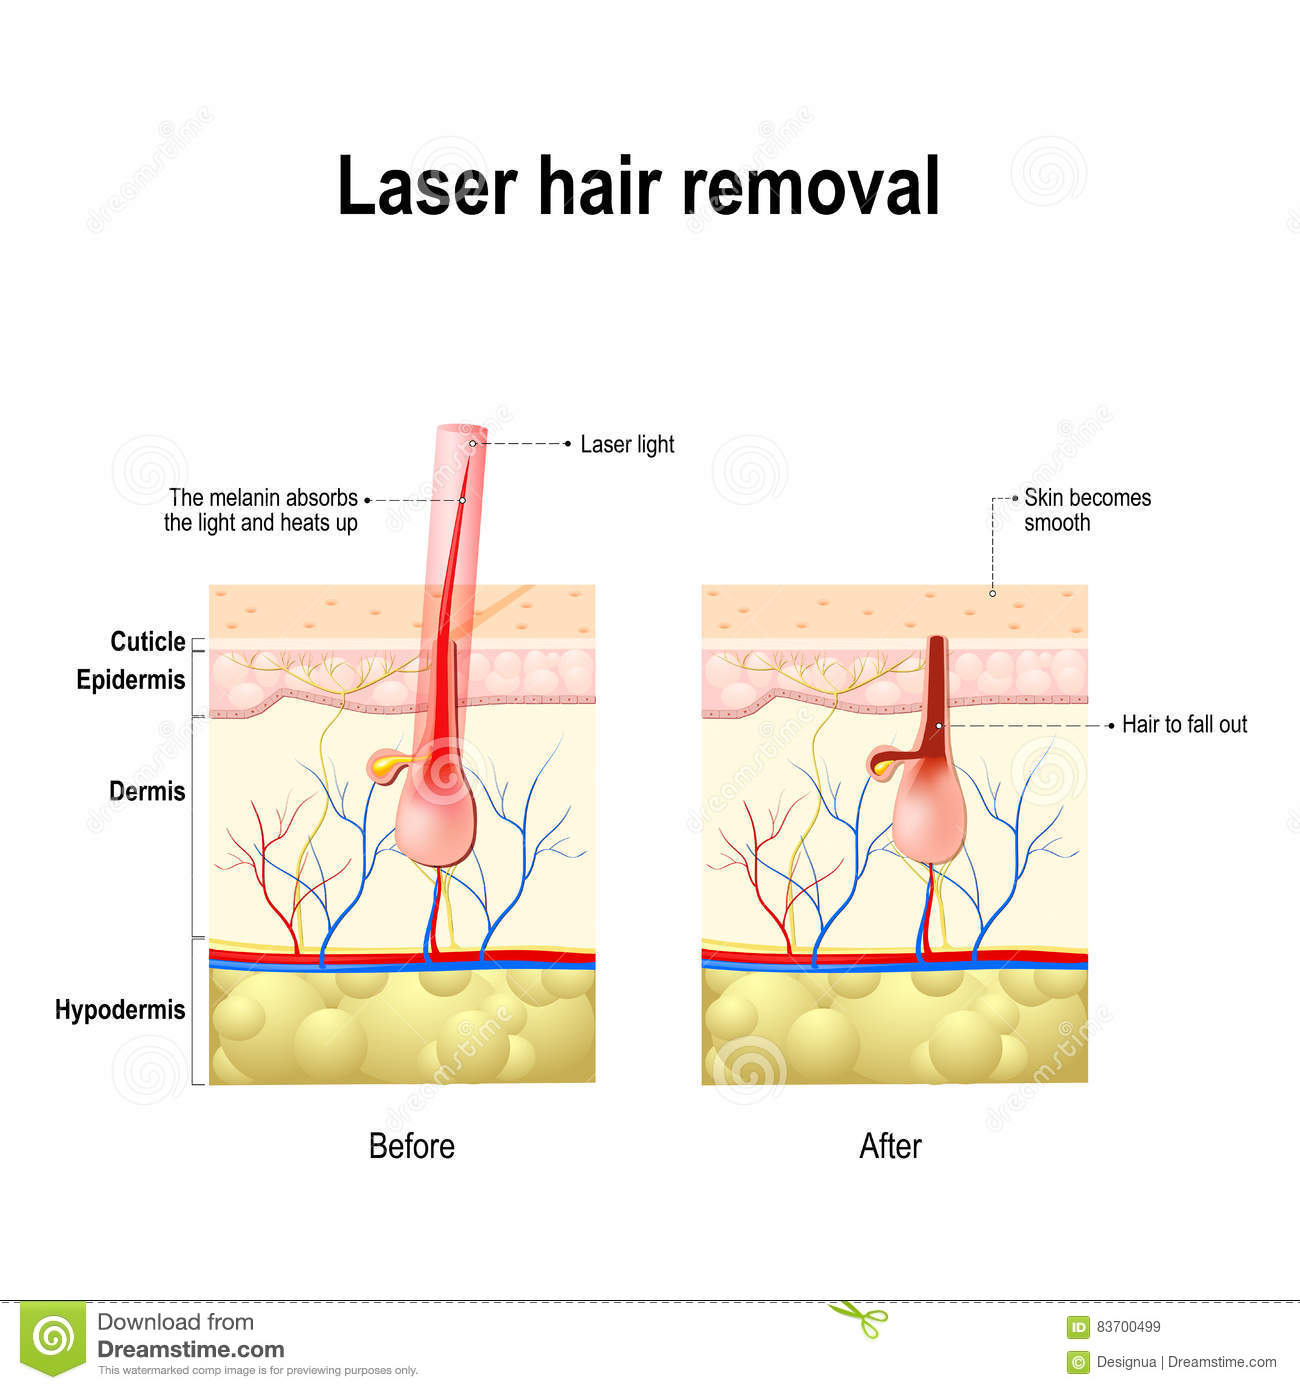 a beam of light that is absorbed by the pigment in hair  this causes  damage to the hair follicle without hurting the skin tissue  laser treatment